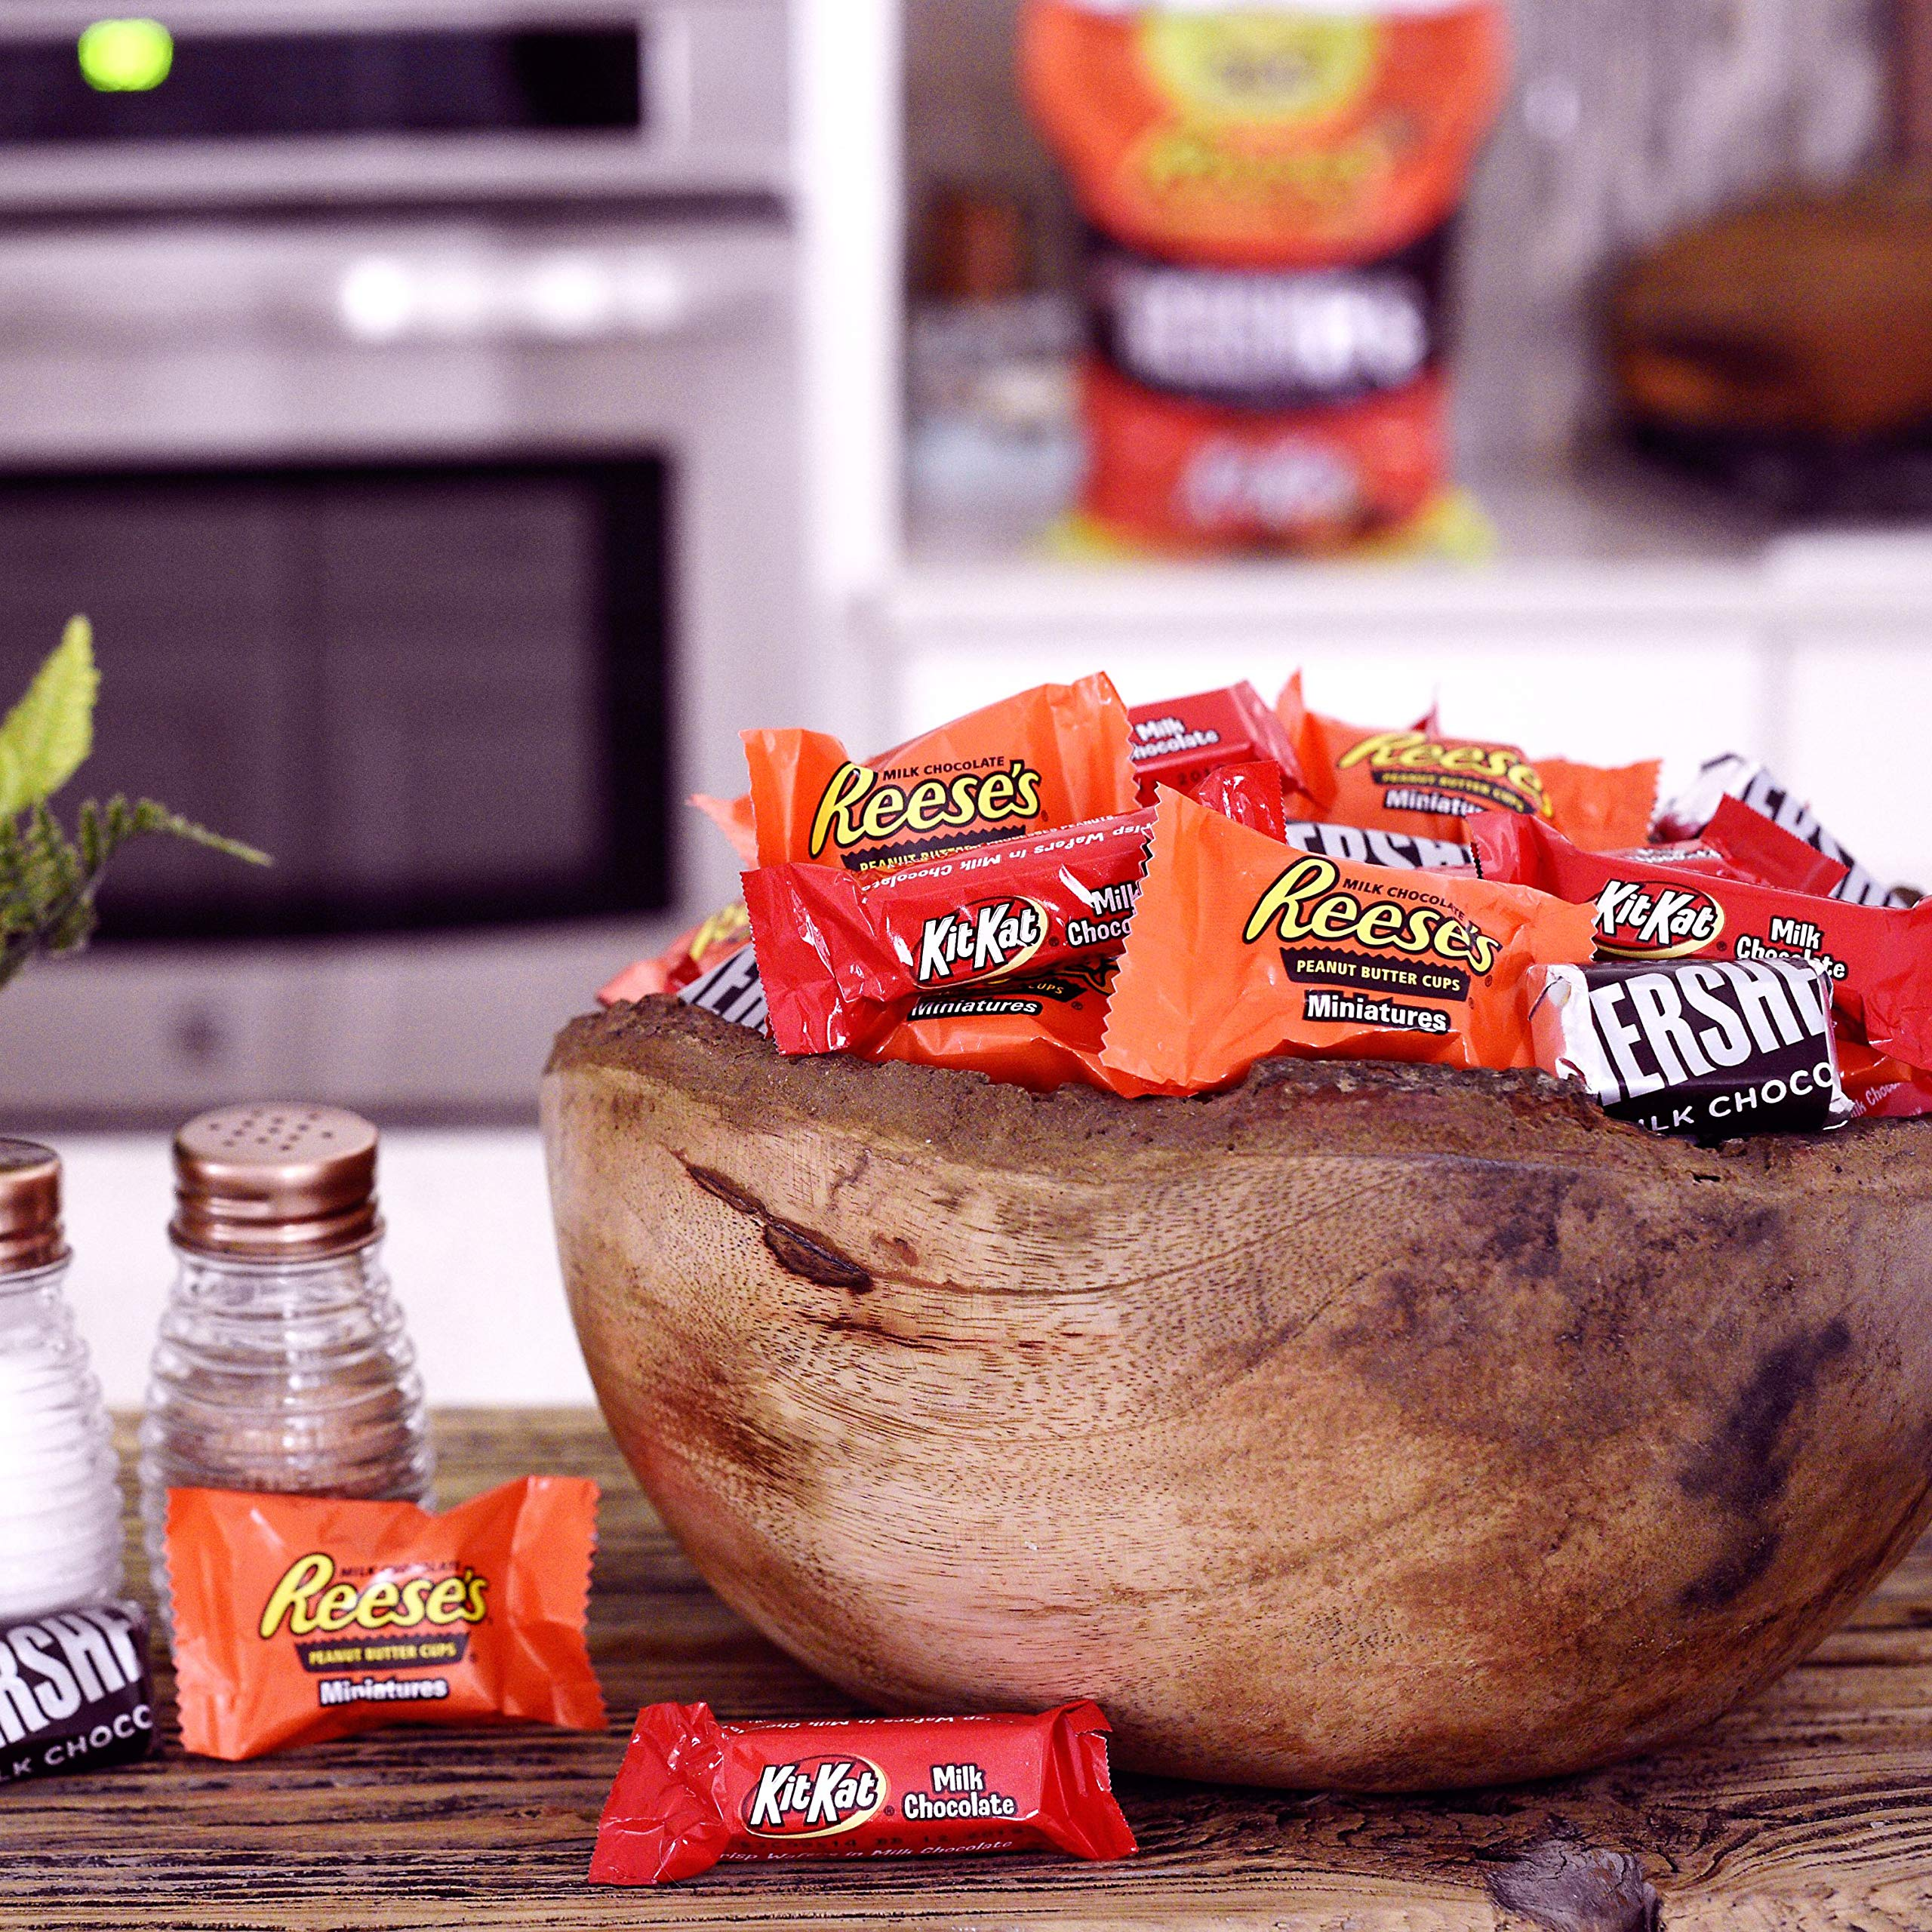 HERSHEY'S 5 Pound Candy Assortment, Bulk Chocolate Candy , HERSHEY'S, REESE'S, and KIT KAT, 265 Pieces by HERSHEY'S (Image #4)